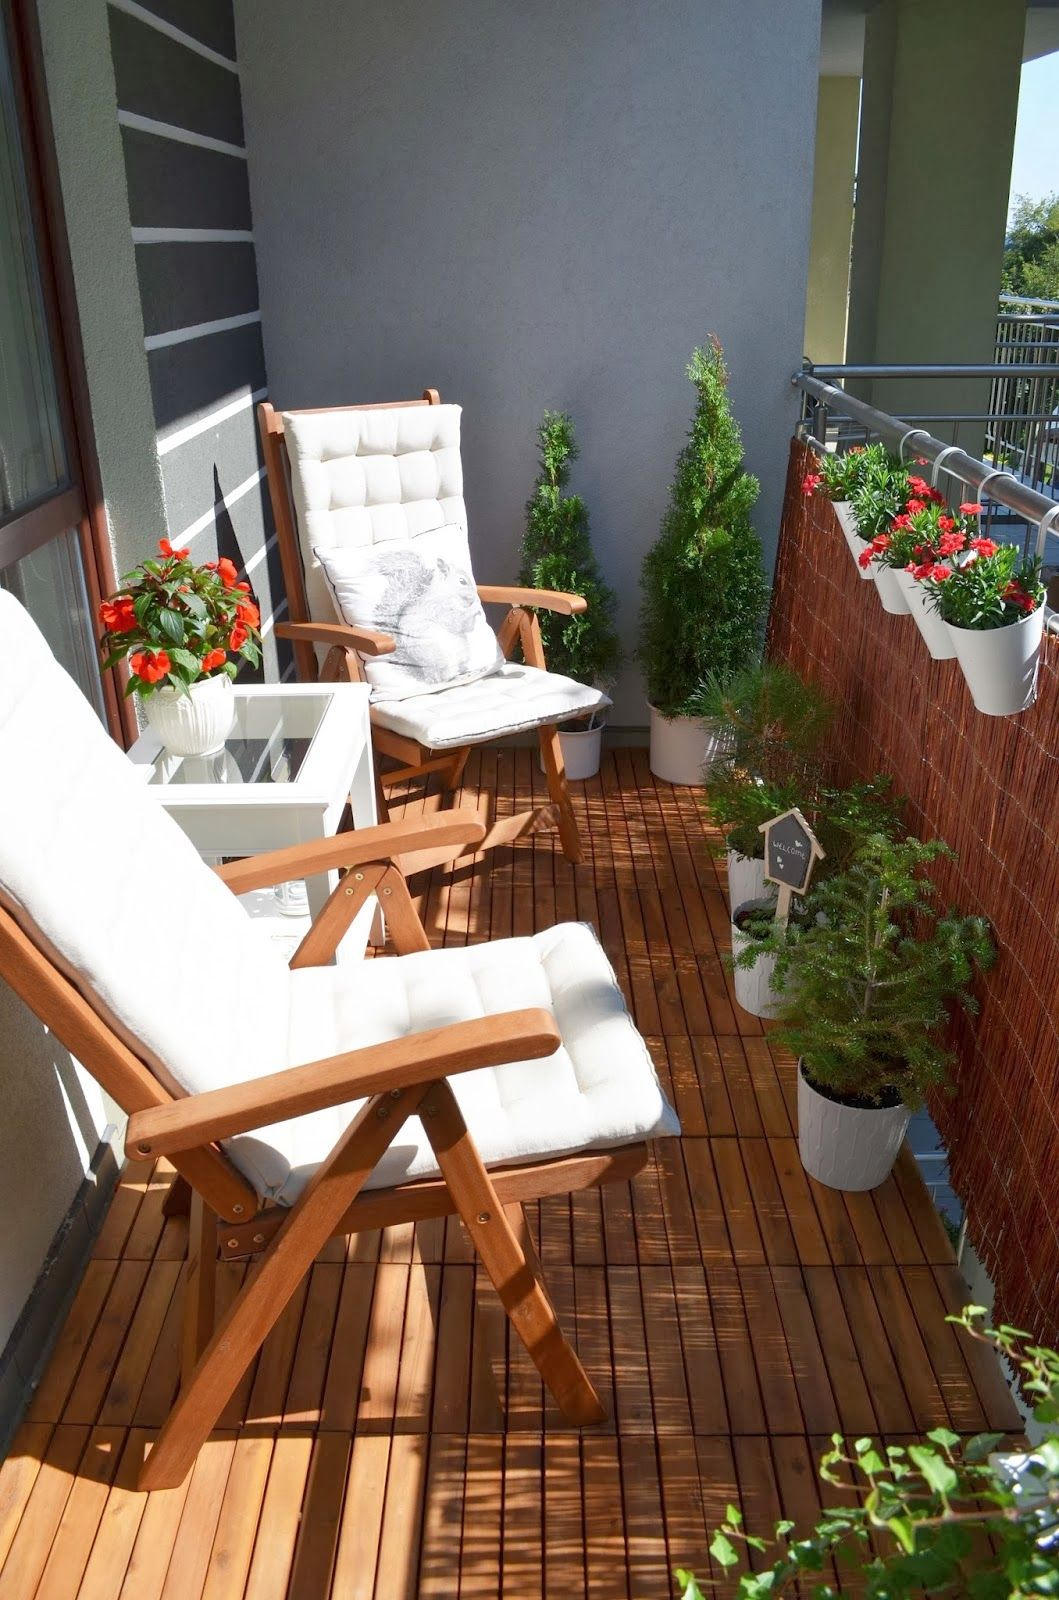 How To Spruce Up A Al Apartment Deck Add Portable Wooden Panels For Flooring And That Cute Squirrel Pillow Dekorator Amator Na Balkonie Po